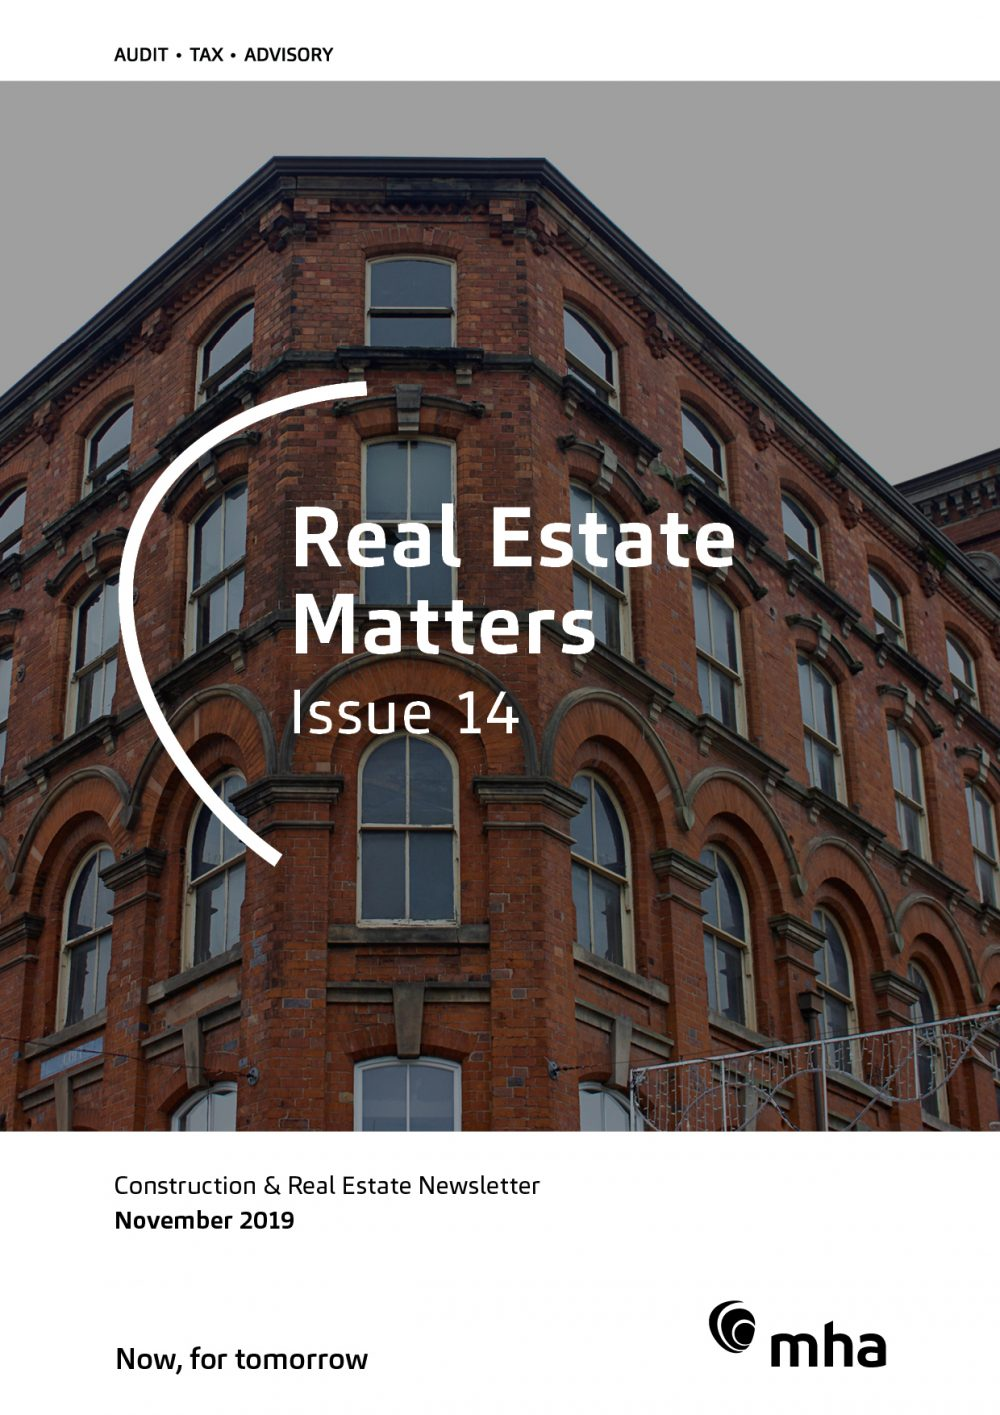 Real Estate Matters Issue 14